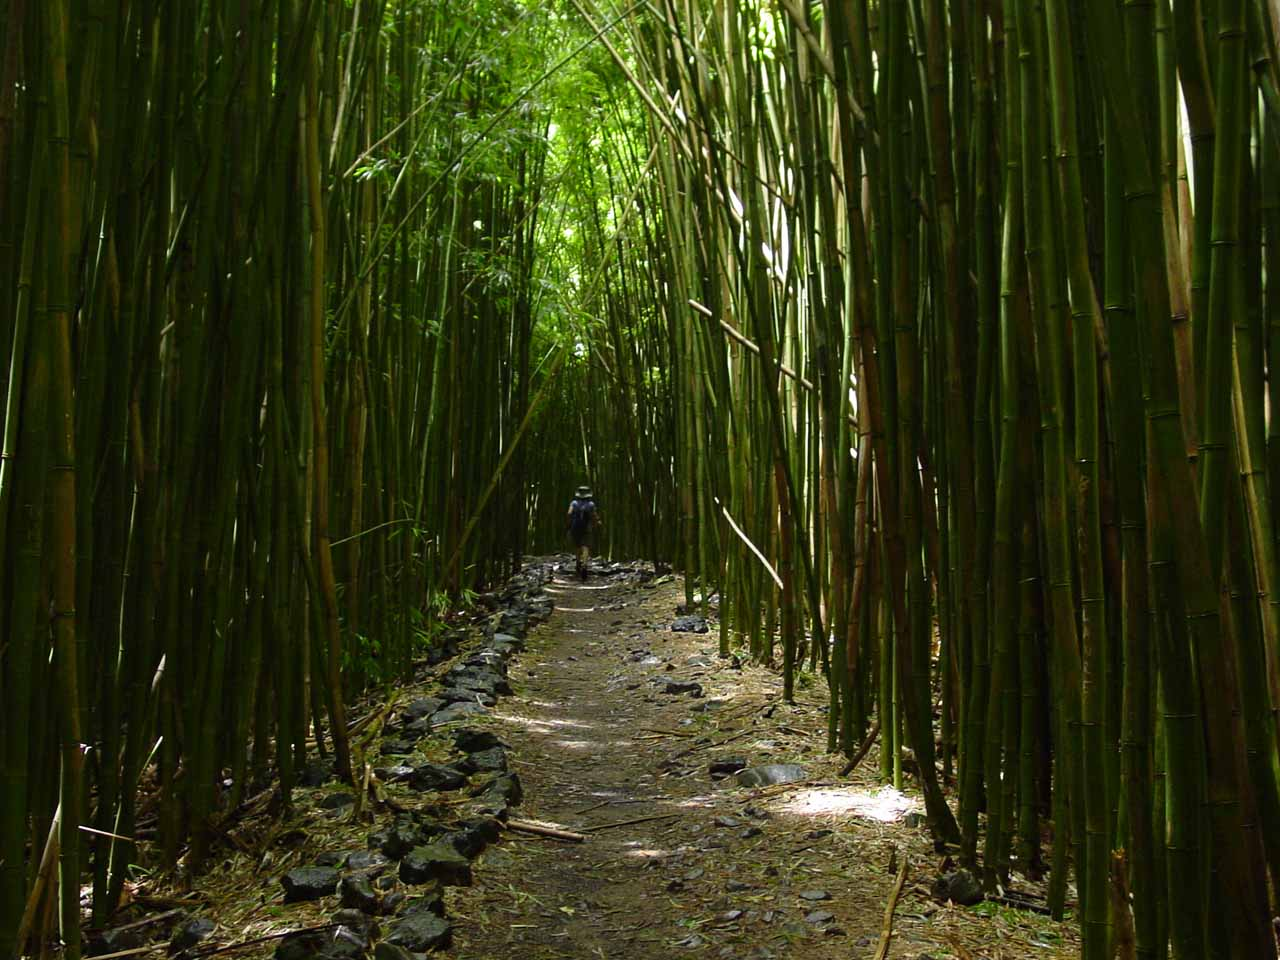 Still in the bamboo forest